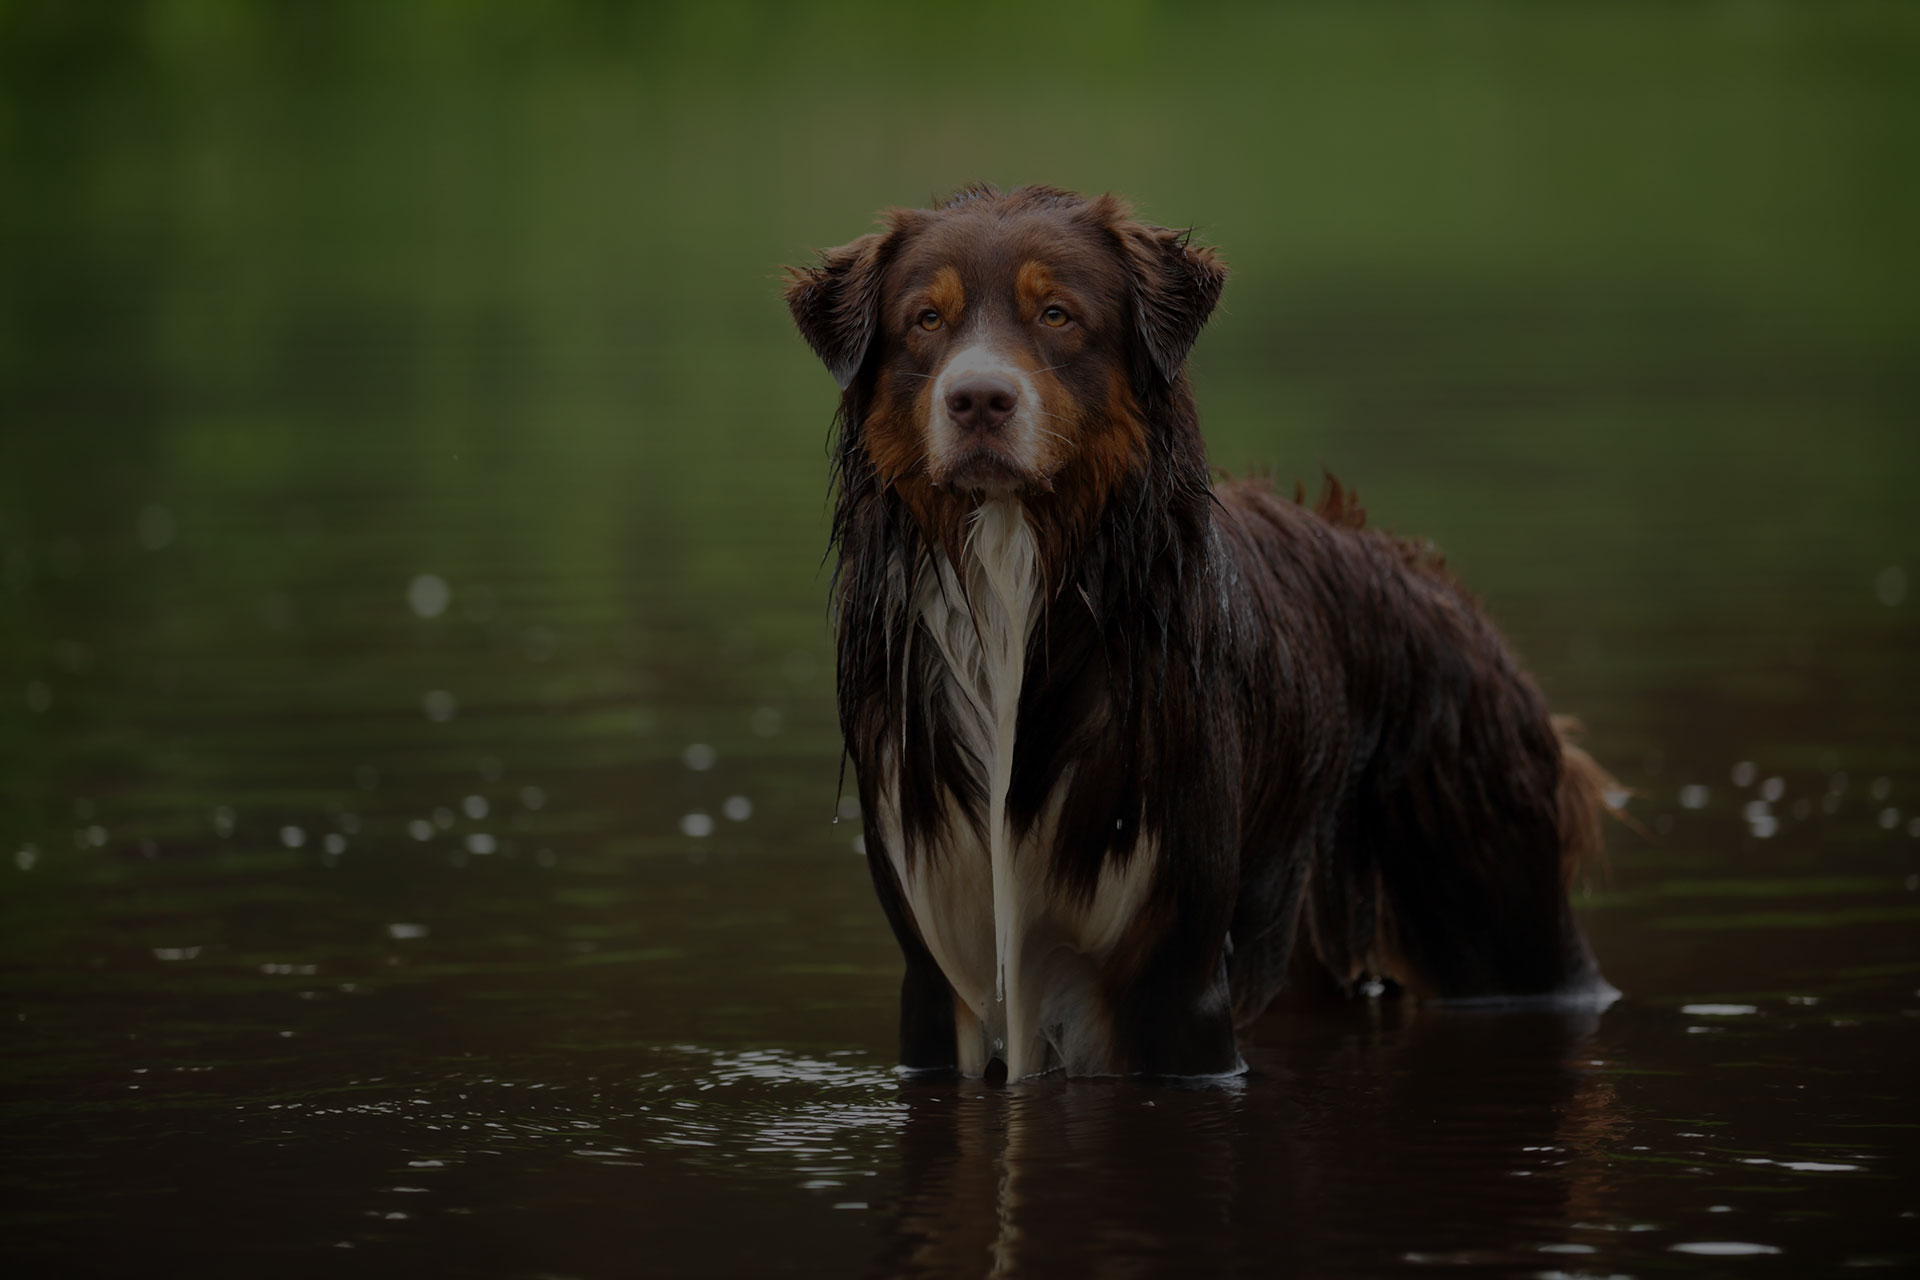 Australian Shepherd dog standing in water